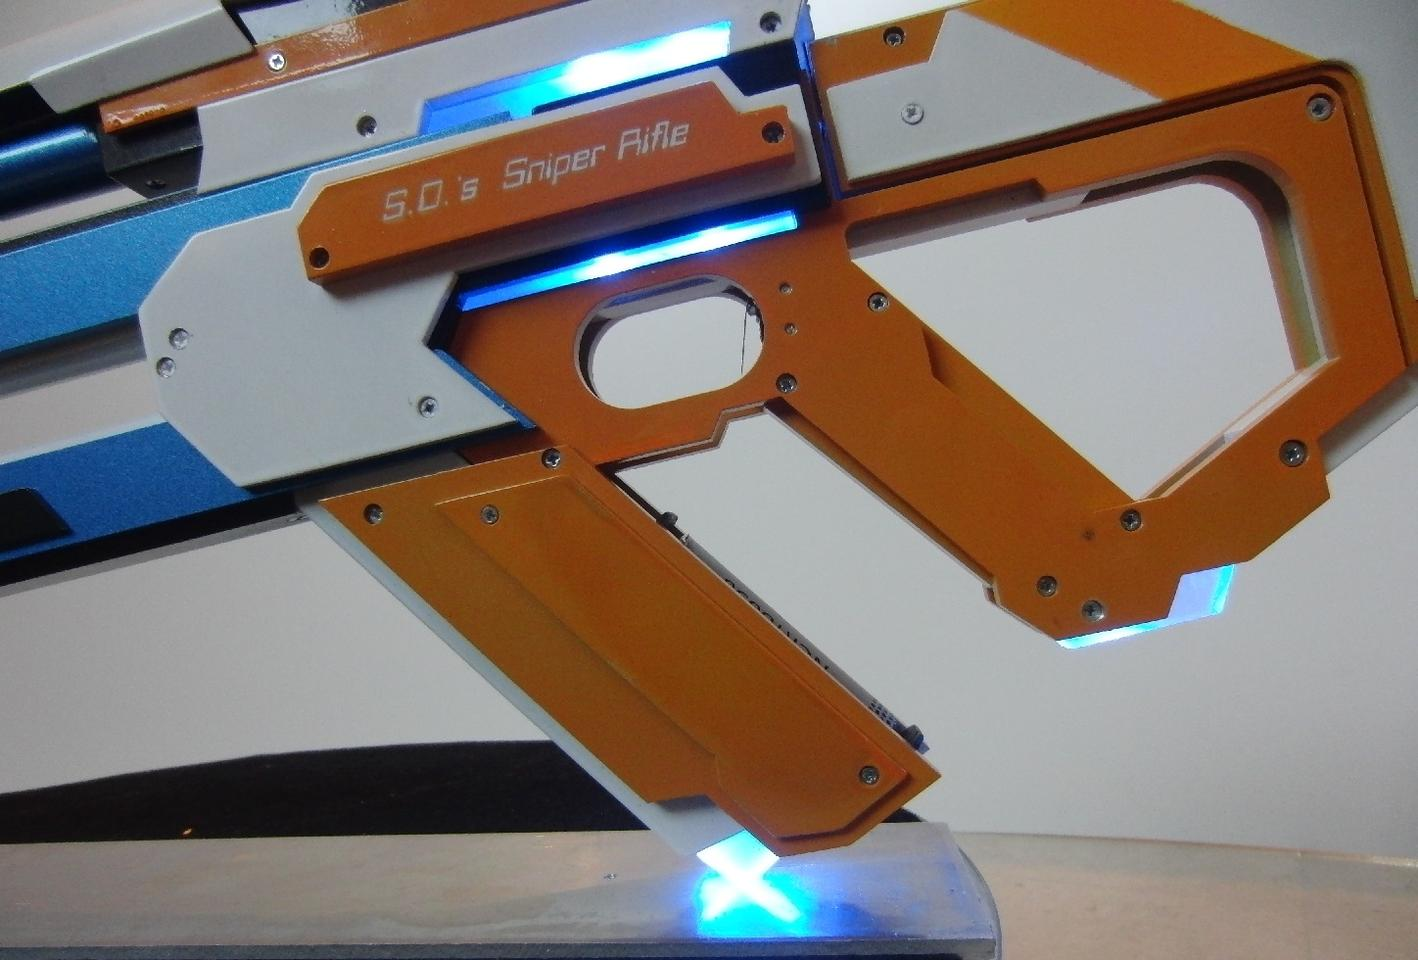 The gun utilizes dual blue 1.5-watt burning lasers and a 1-mW red aiming laser